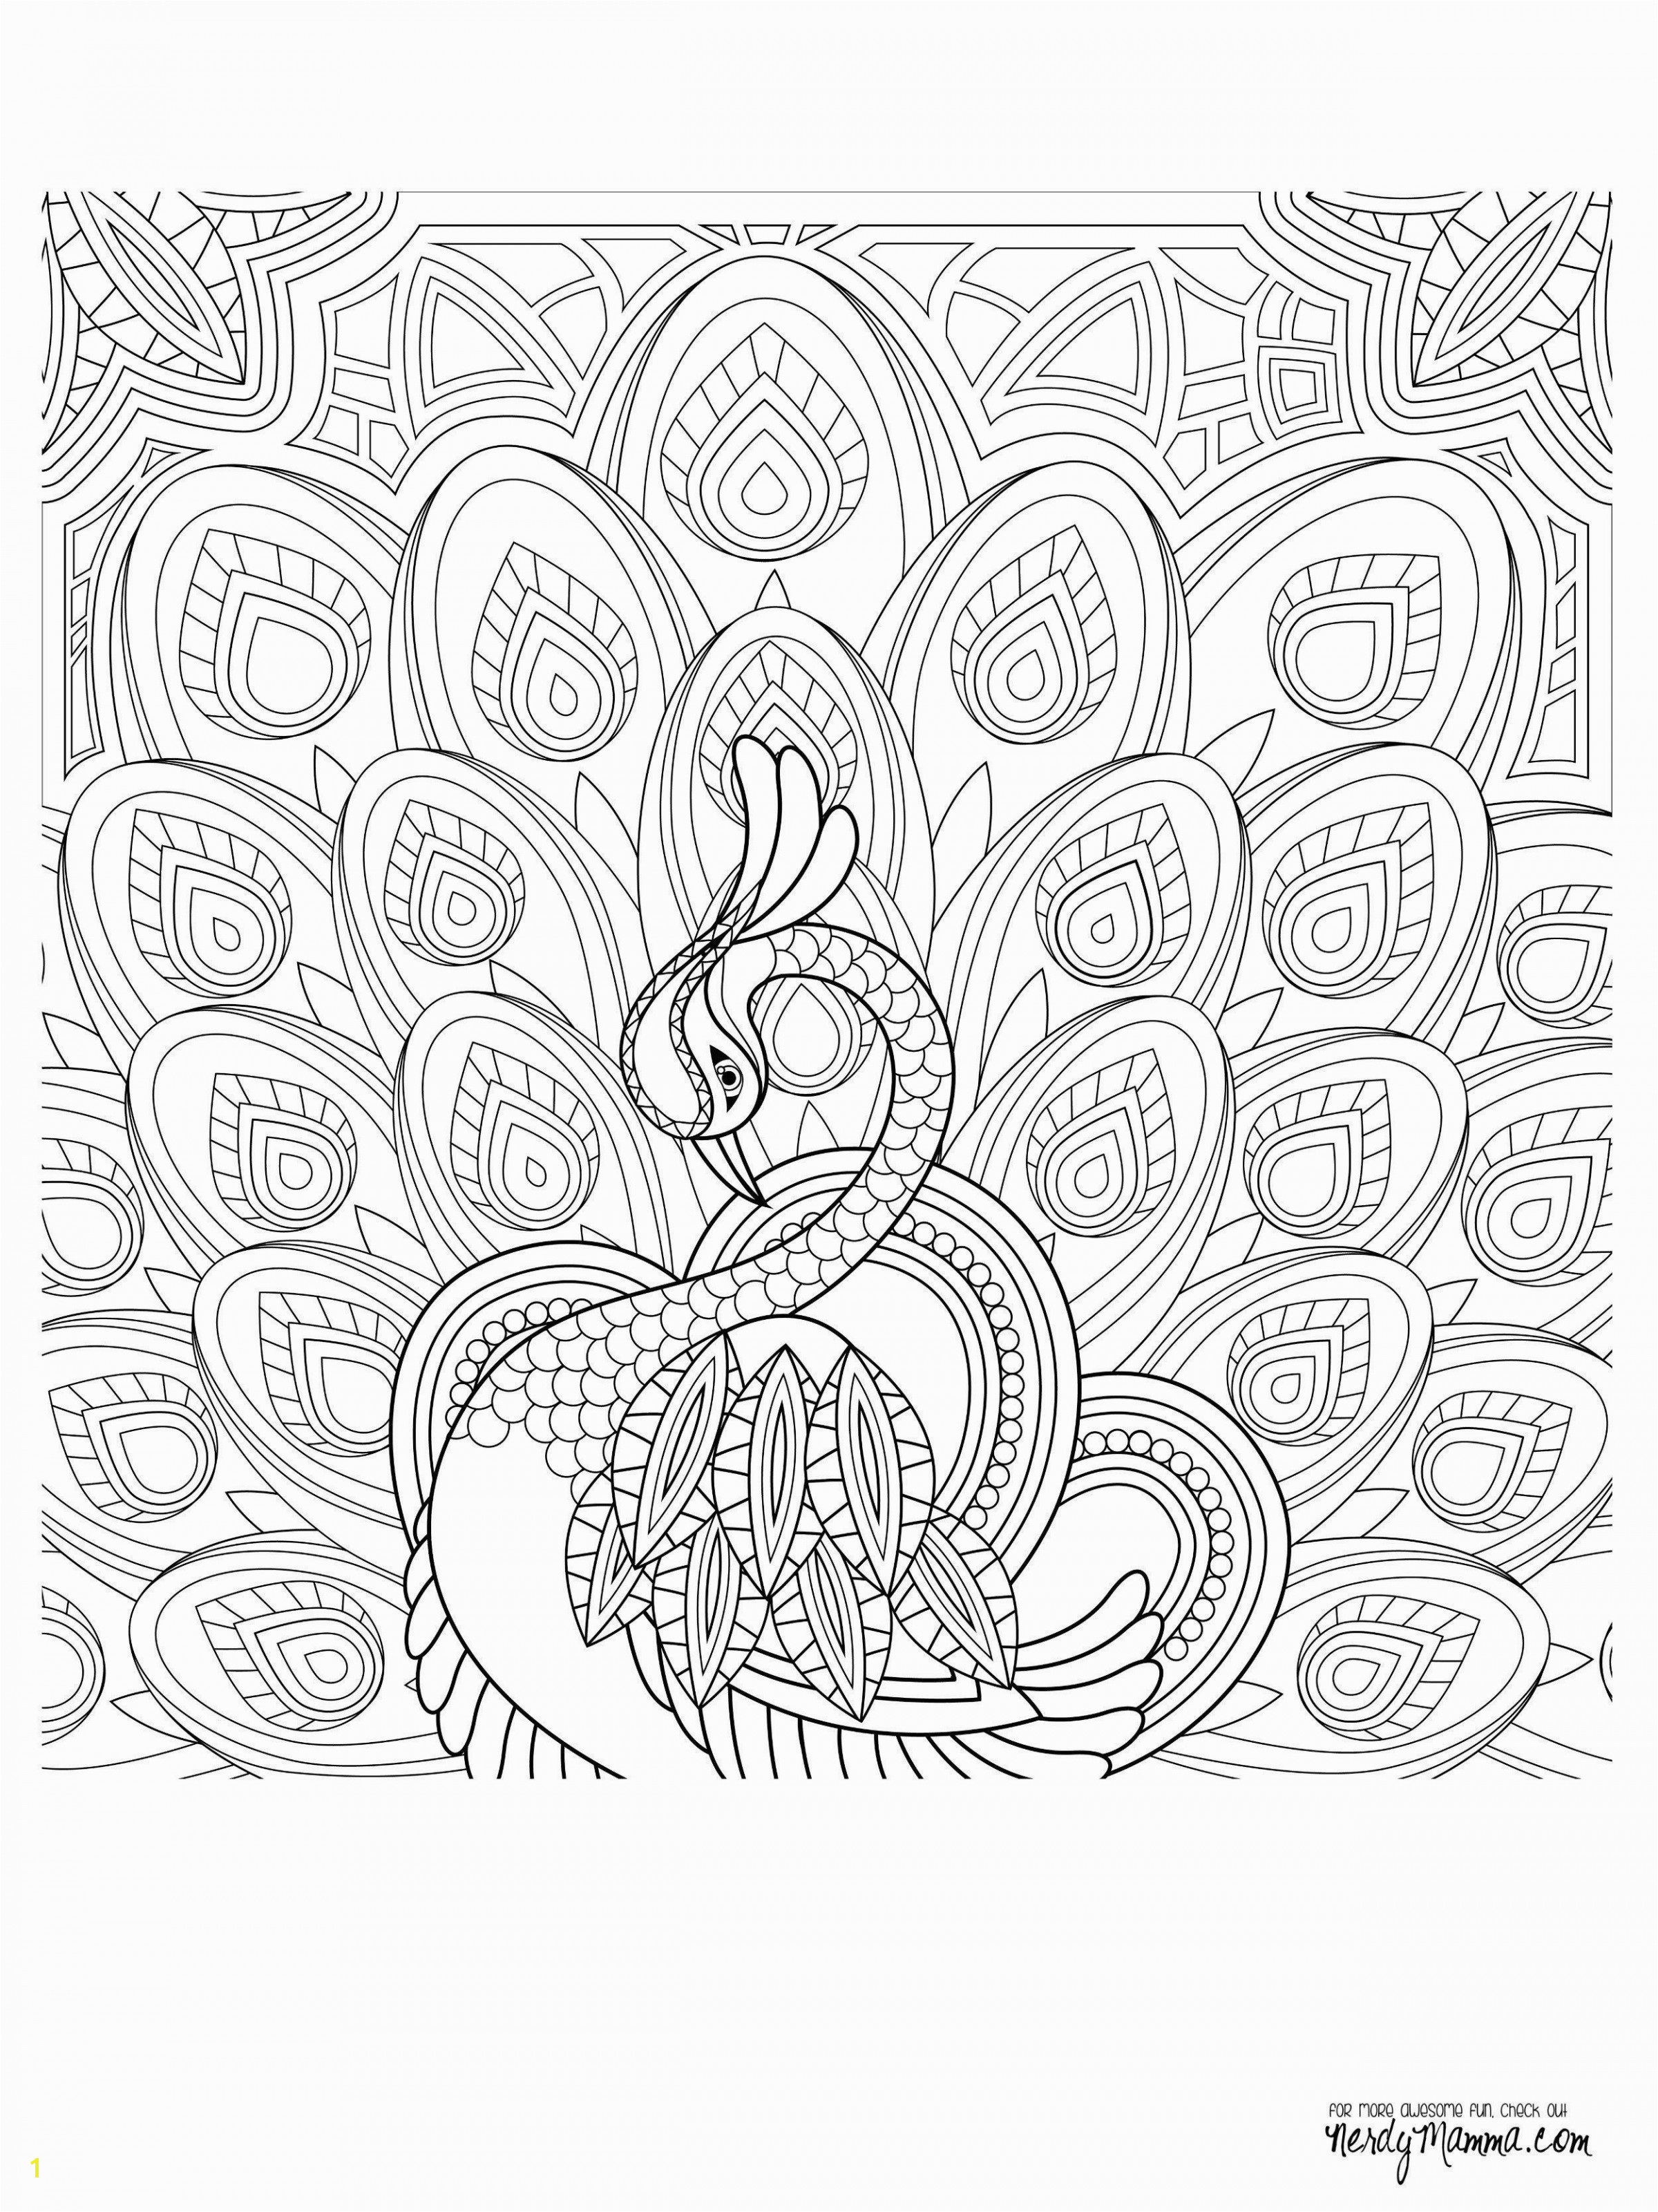 Chocolate Bar Coloring Page Candy Coloring Pages Elegant Home Coloring Pages Best Color Sheet 0d